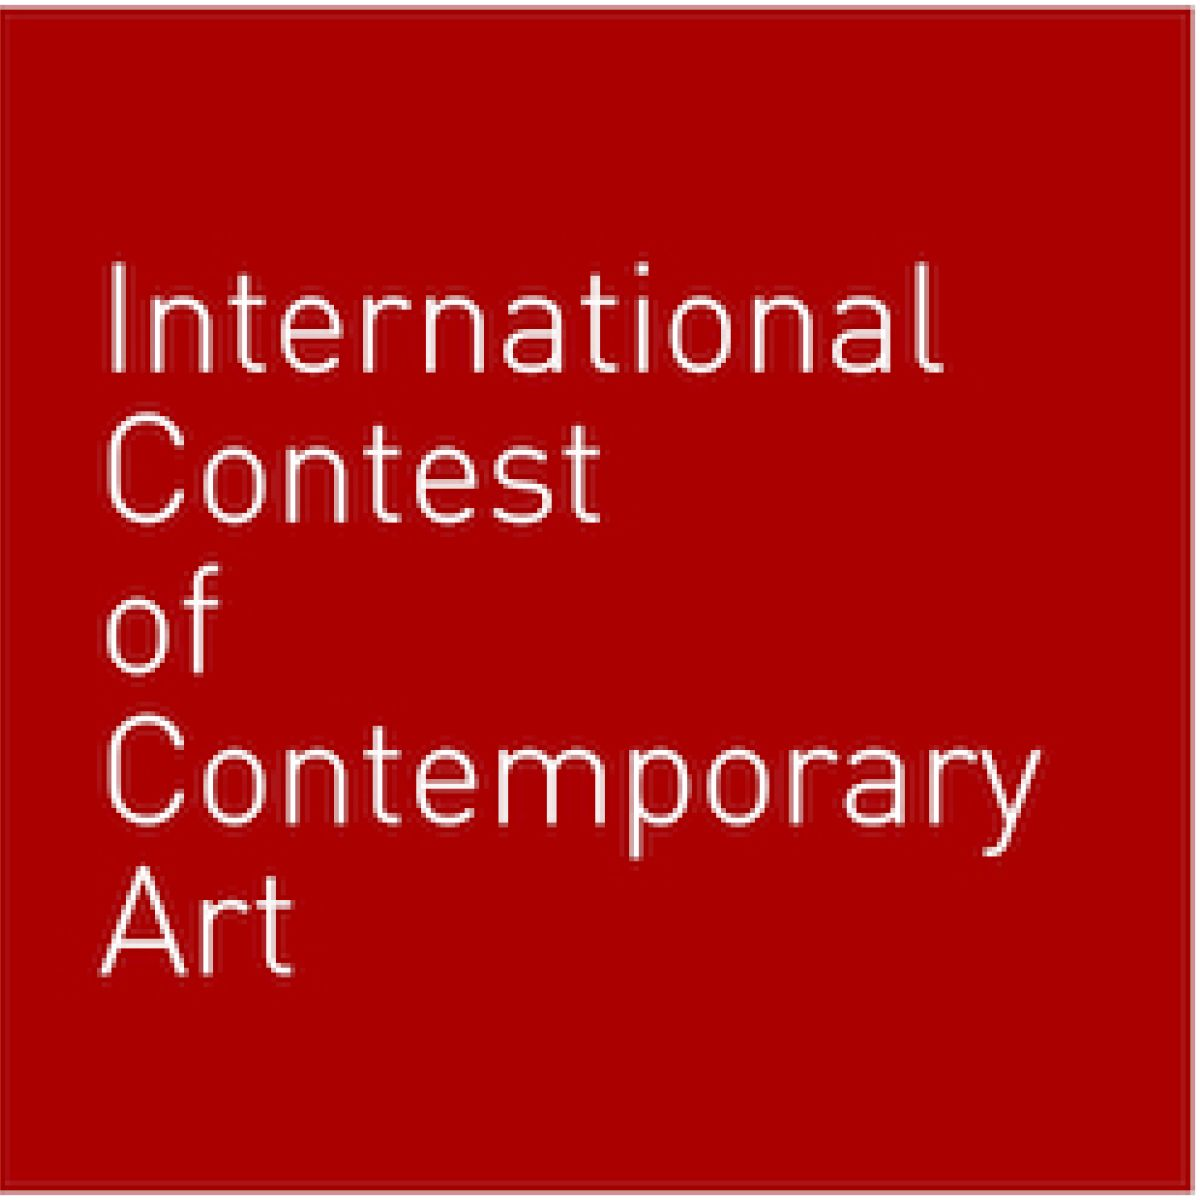 YICCA International Contest of Contemporary Art 16/17